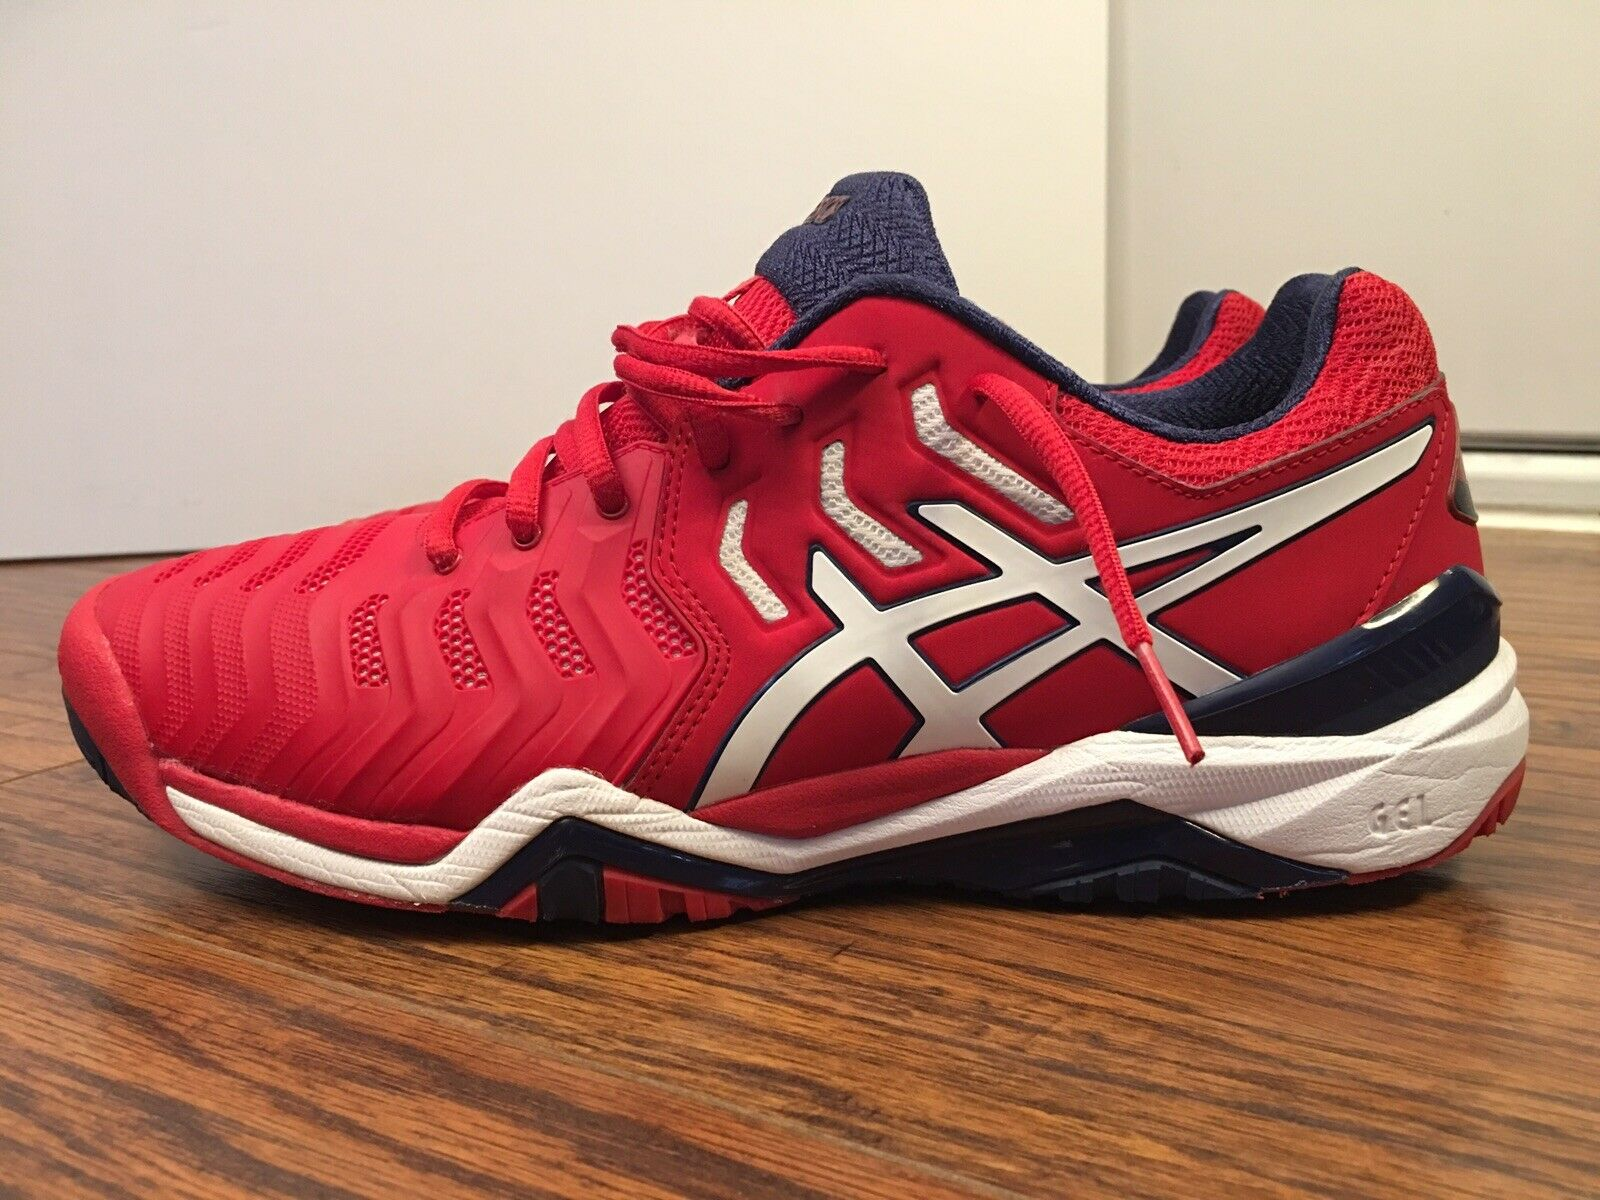 ASICS Gel-Resolution 7, E701Y, Red White bluee, Men's Tennis shoes, Size 9.5